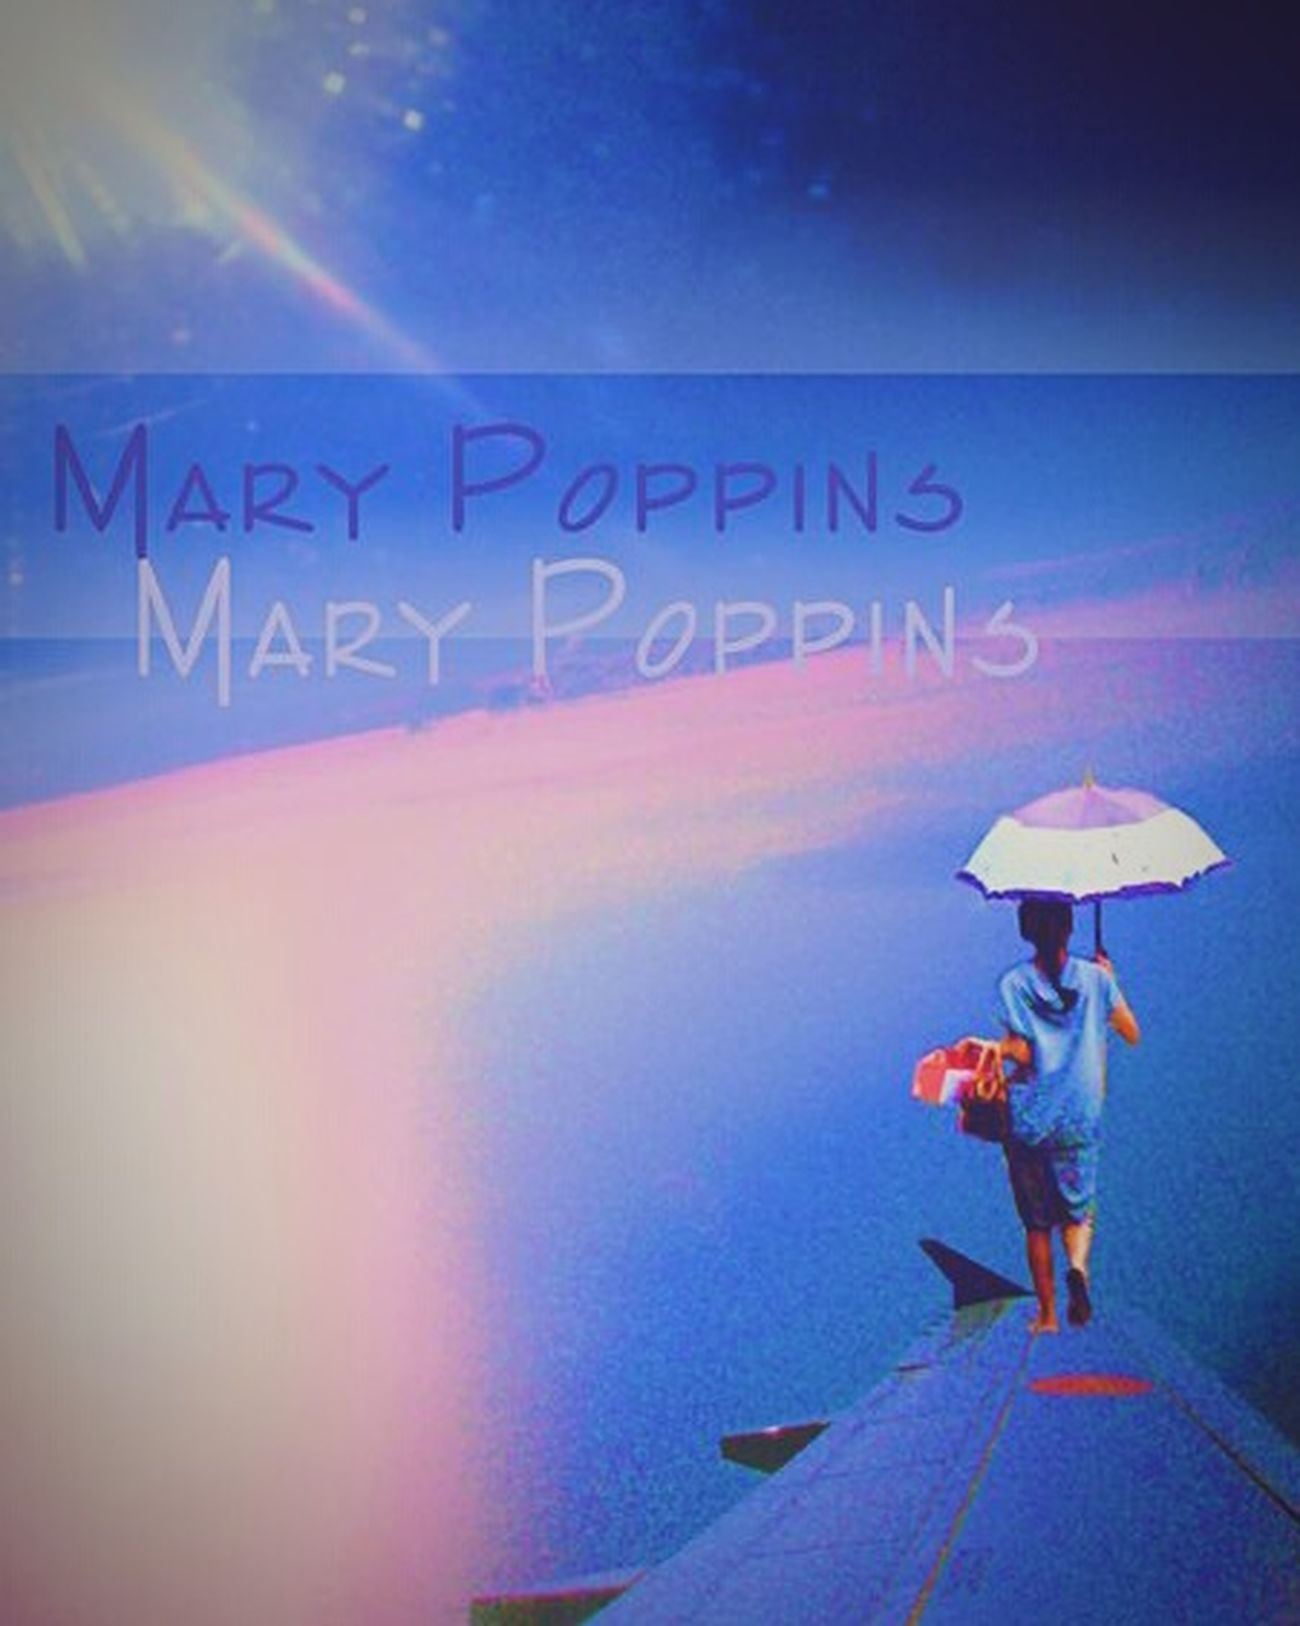 2010 @ ??. Supercalifragilisticexpialidocious! Sky And Clouds Marypoppins Umbrella